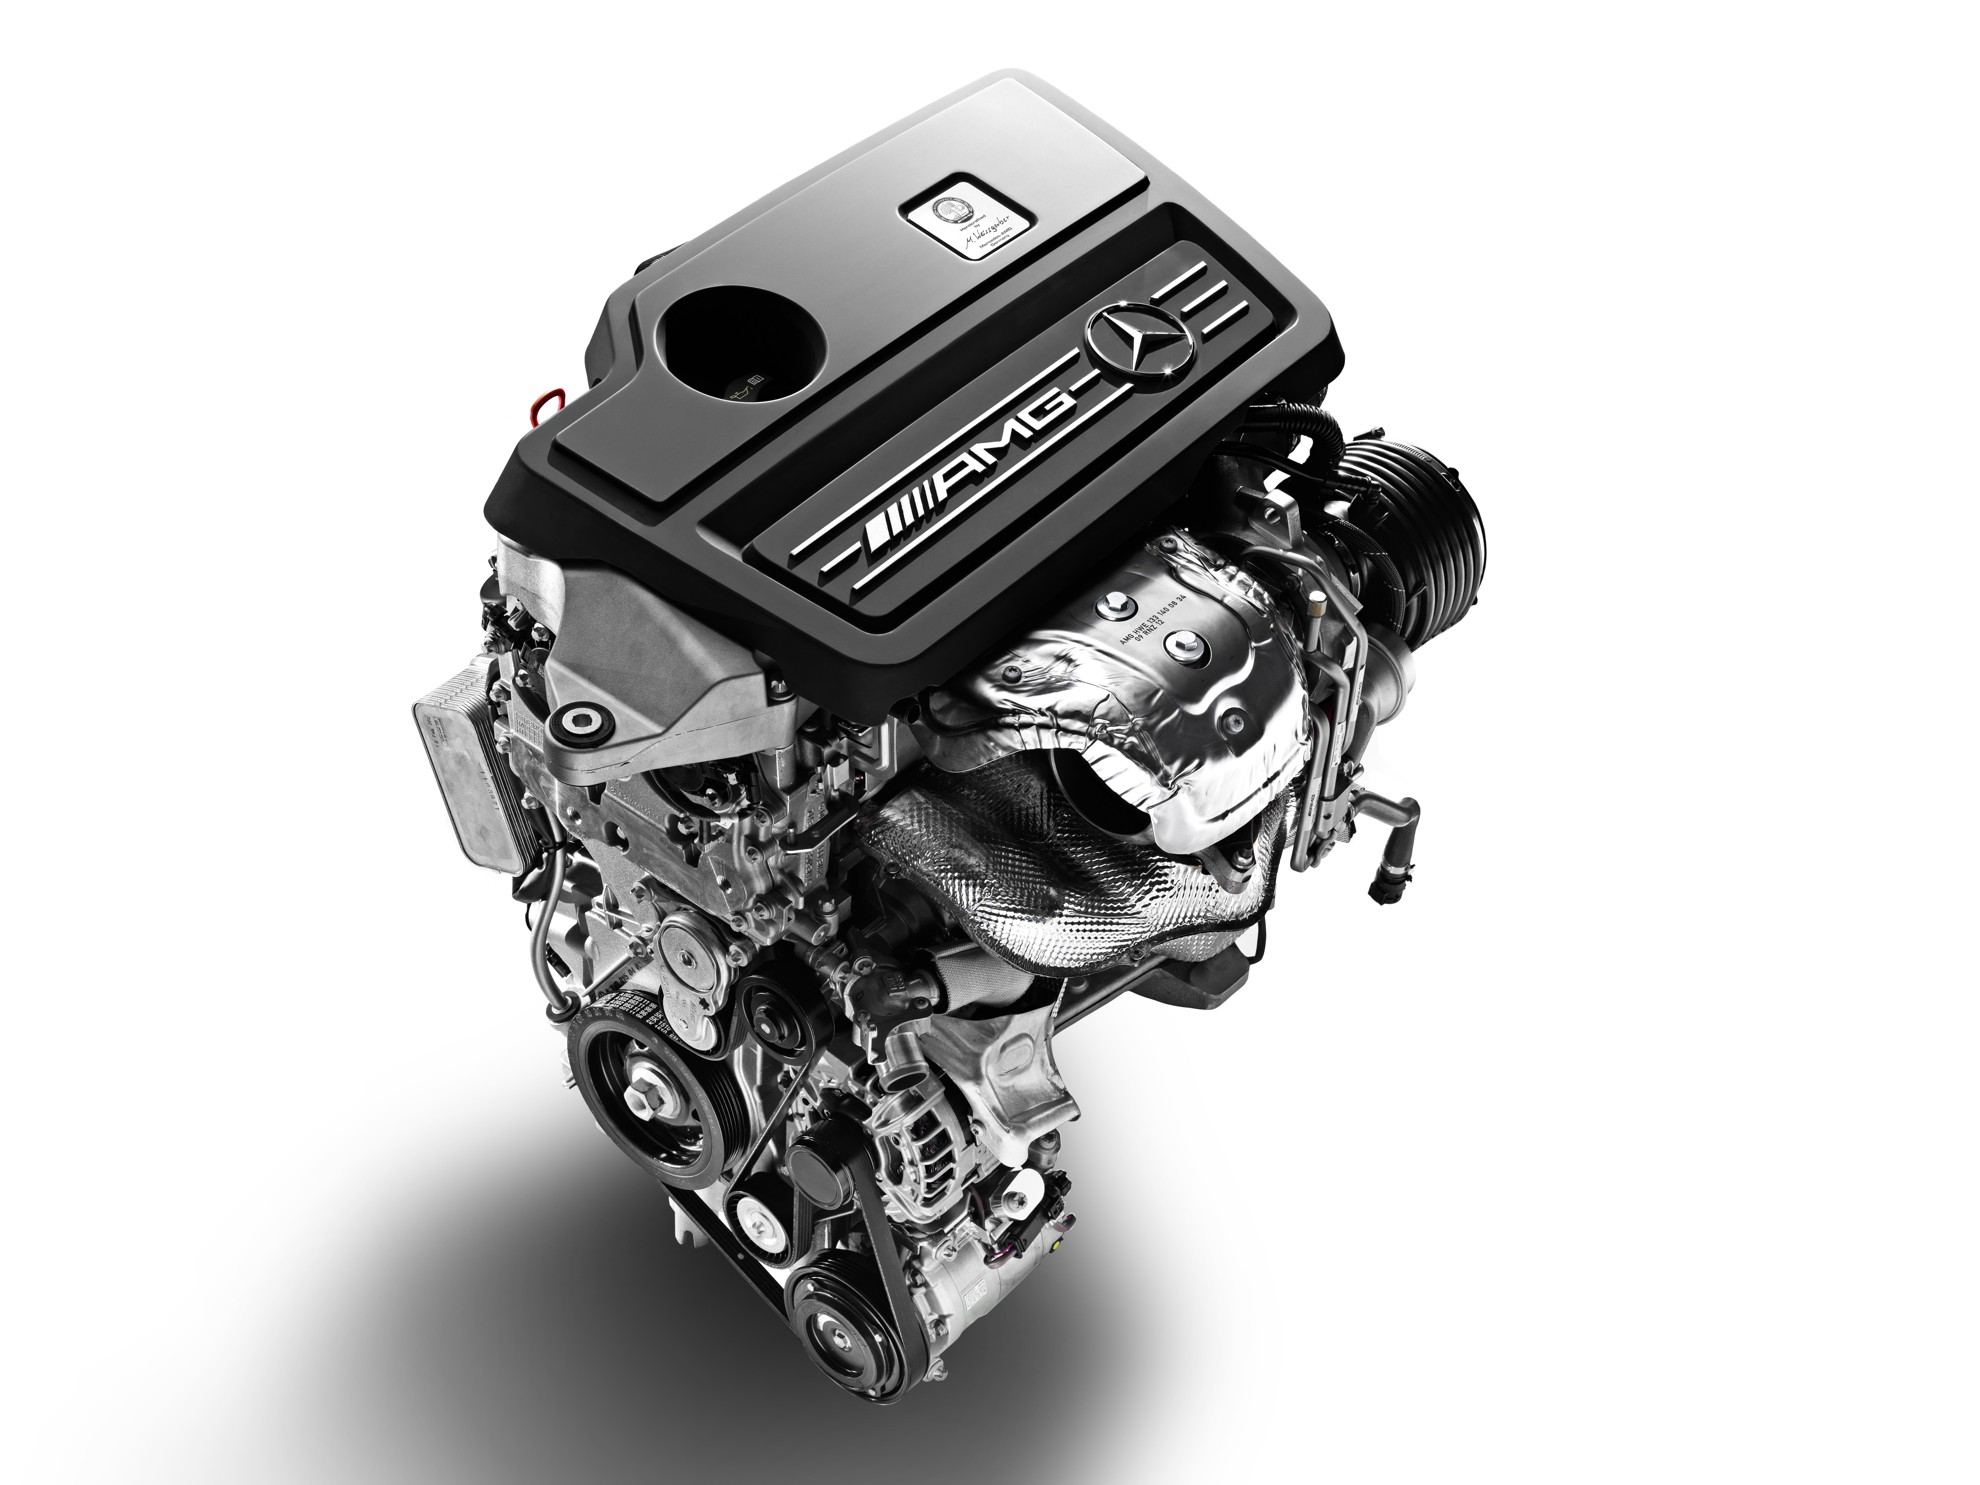 Mercedes-Benz A Class Engine